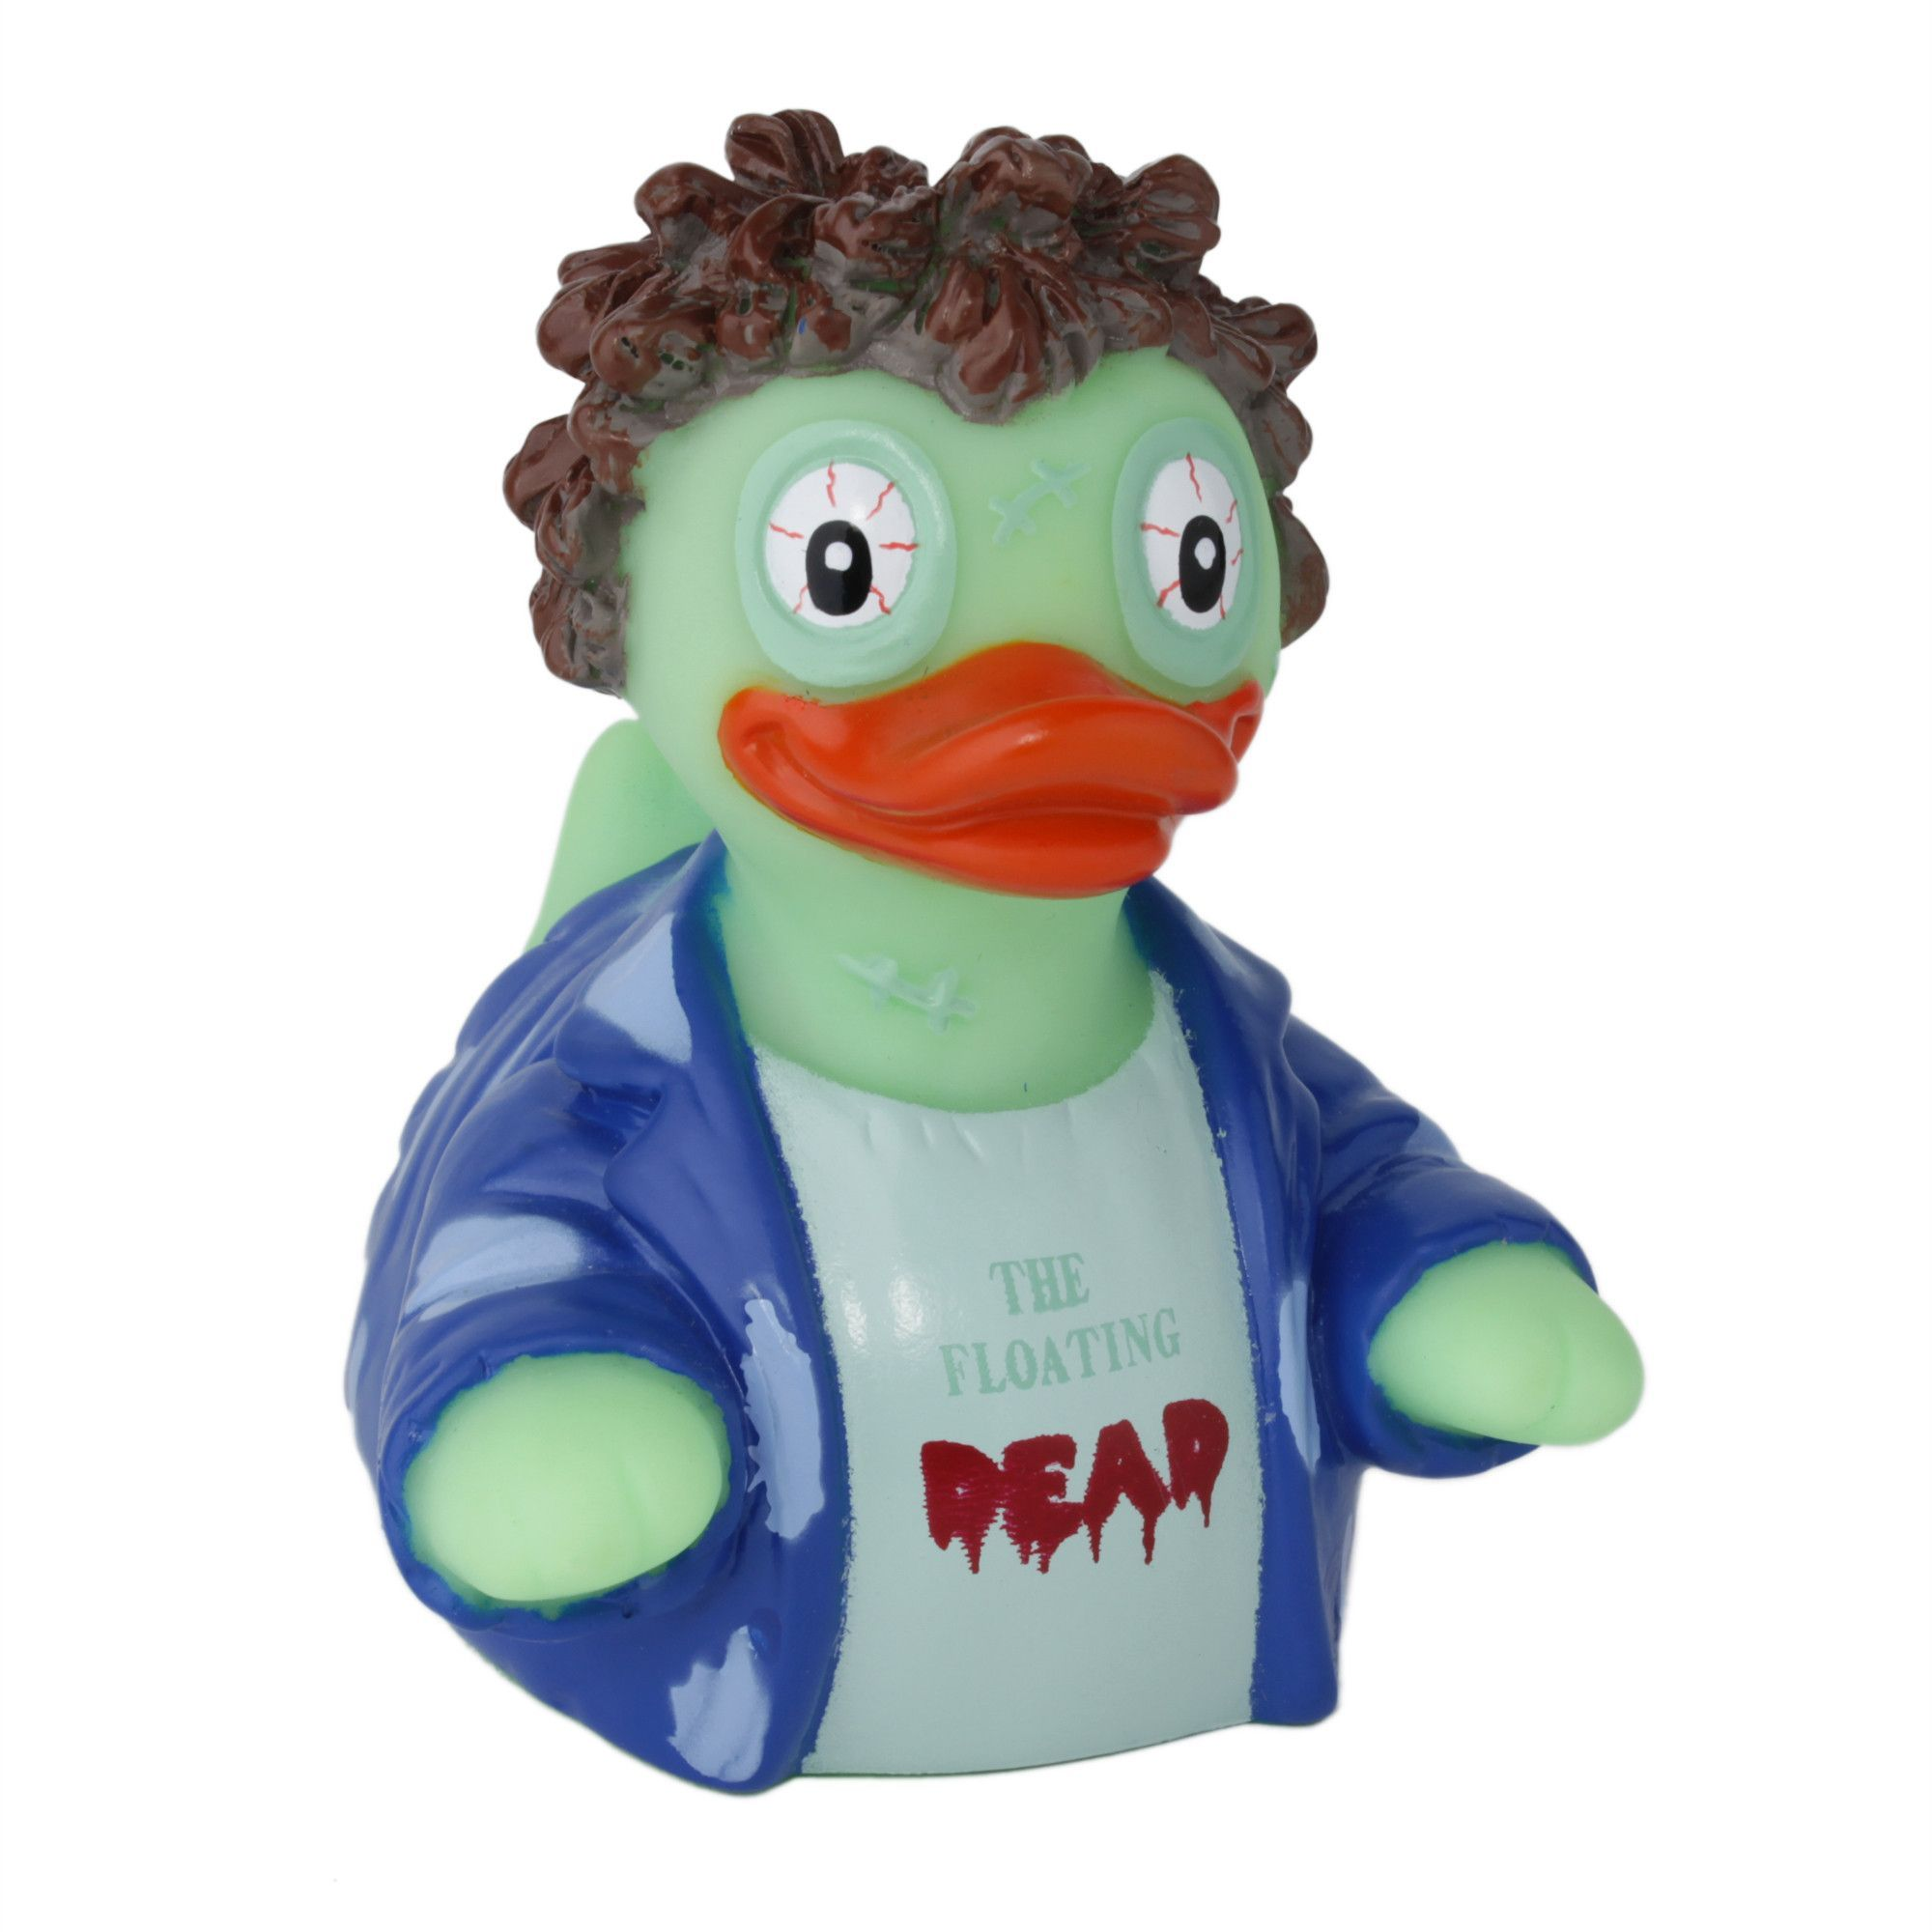 CelebriDucks is frightfully pleased to present THE FLOATING DEAD